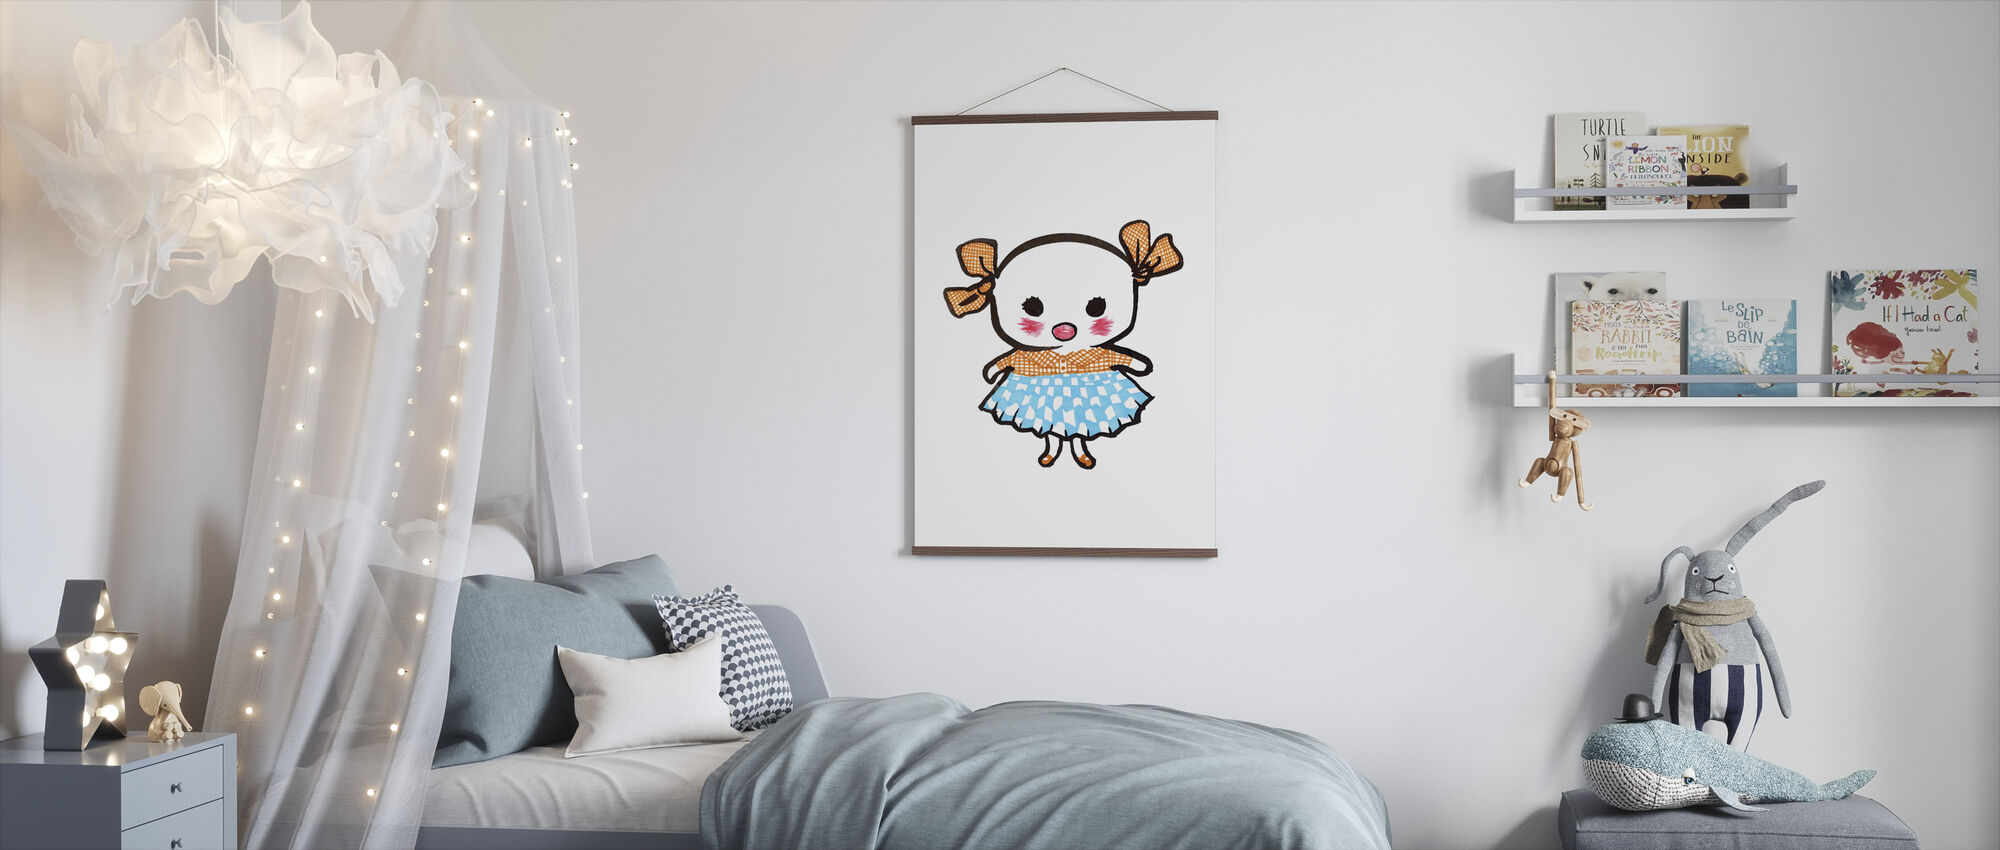 Lill-Stina - Poster - Kids Room